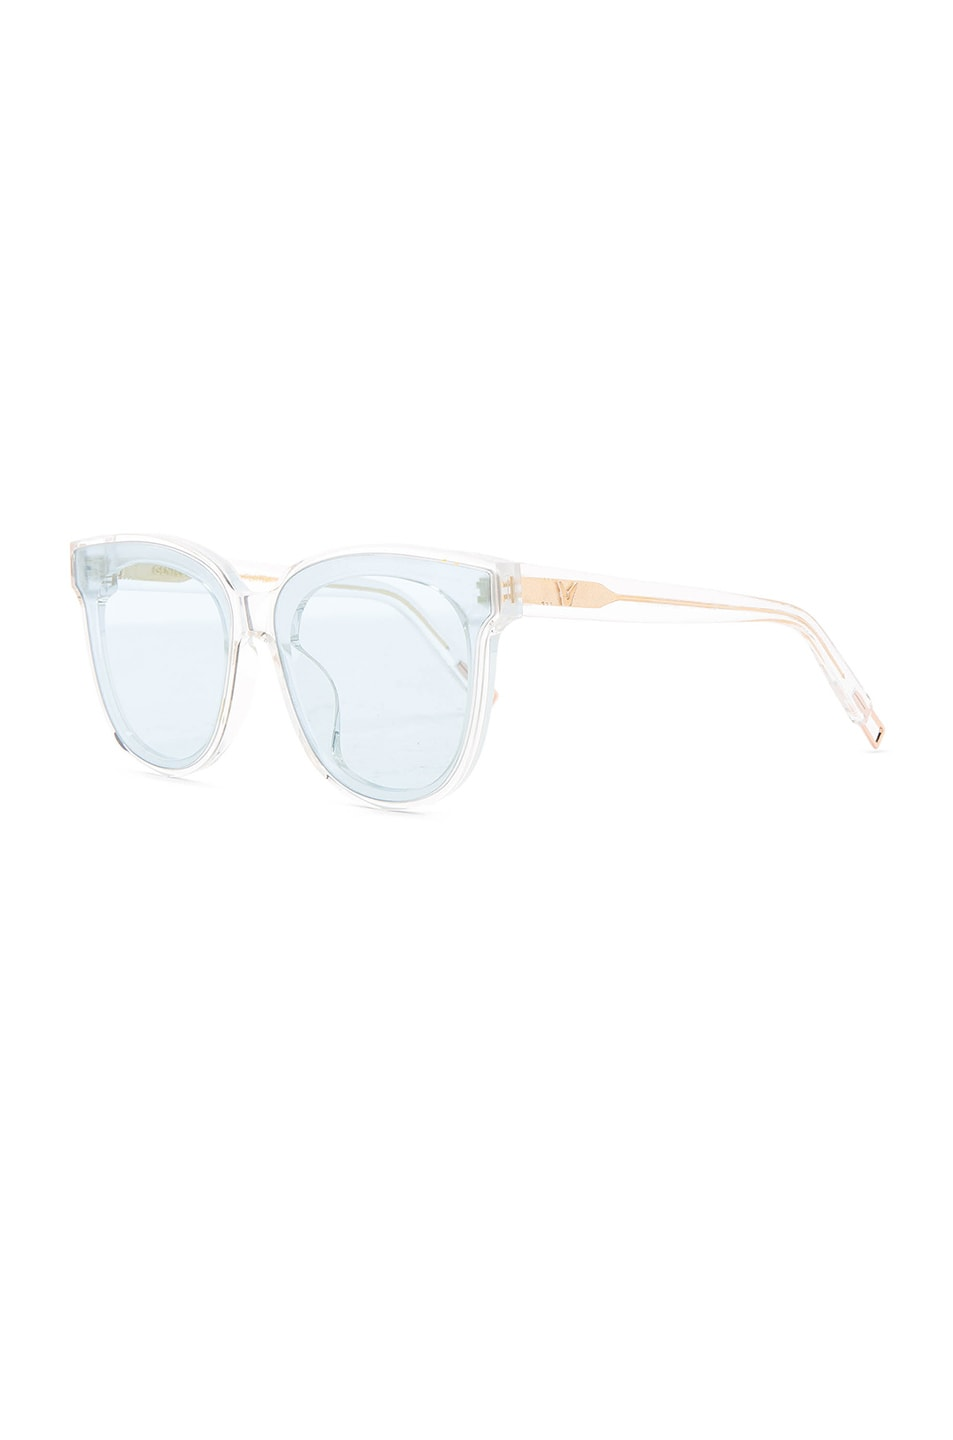 Image 2 of Gentle Monster In Scarlet Sunglasses in Clear Light Blue Acetate & Clear Light Blue